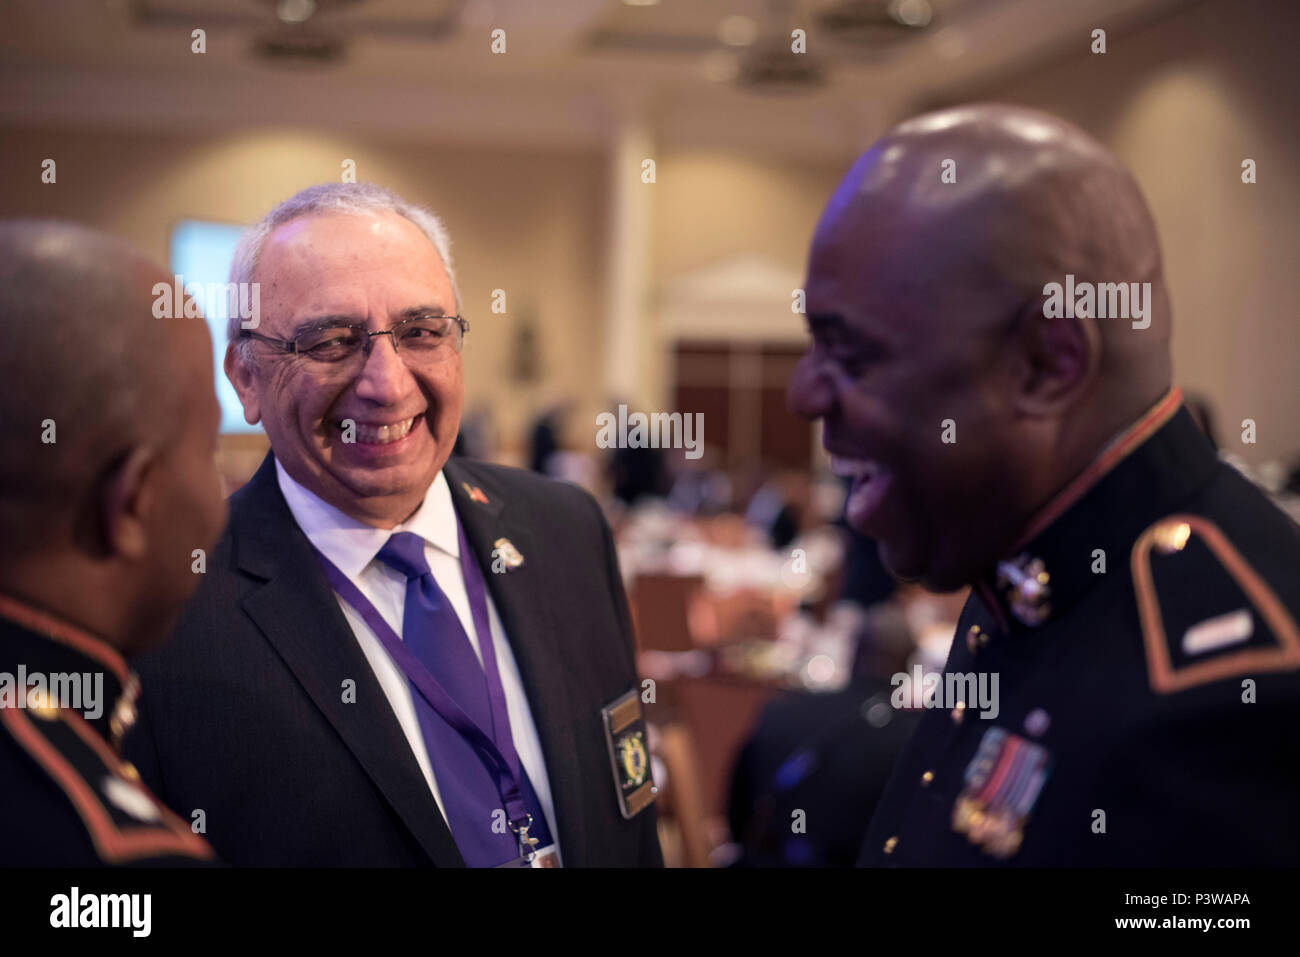 Marines participate in the Omega Psi Phi Fraternity's 80th Grand Conclave in Las Vegas July 23. This event gave the Marine Corps the opportunity to engage with qualified officer prospects and key influencers. - Stock Image